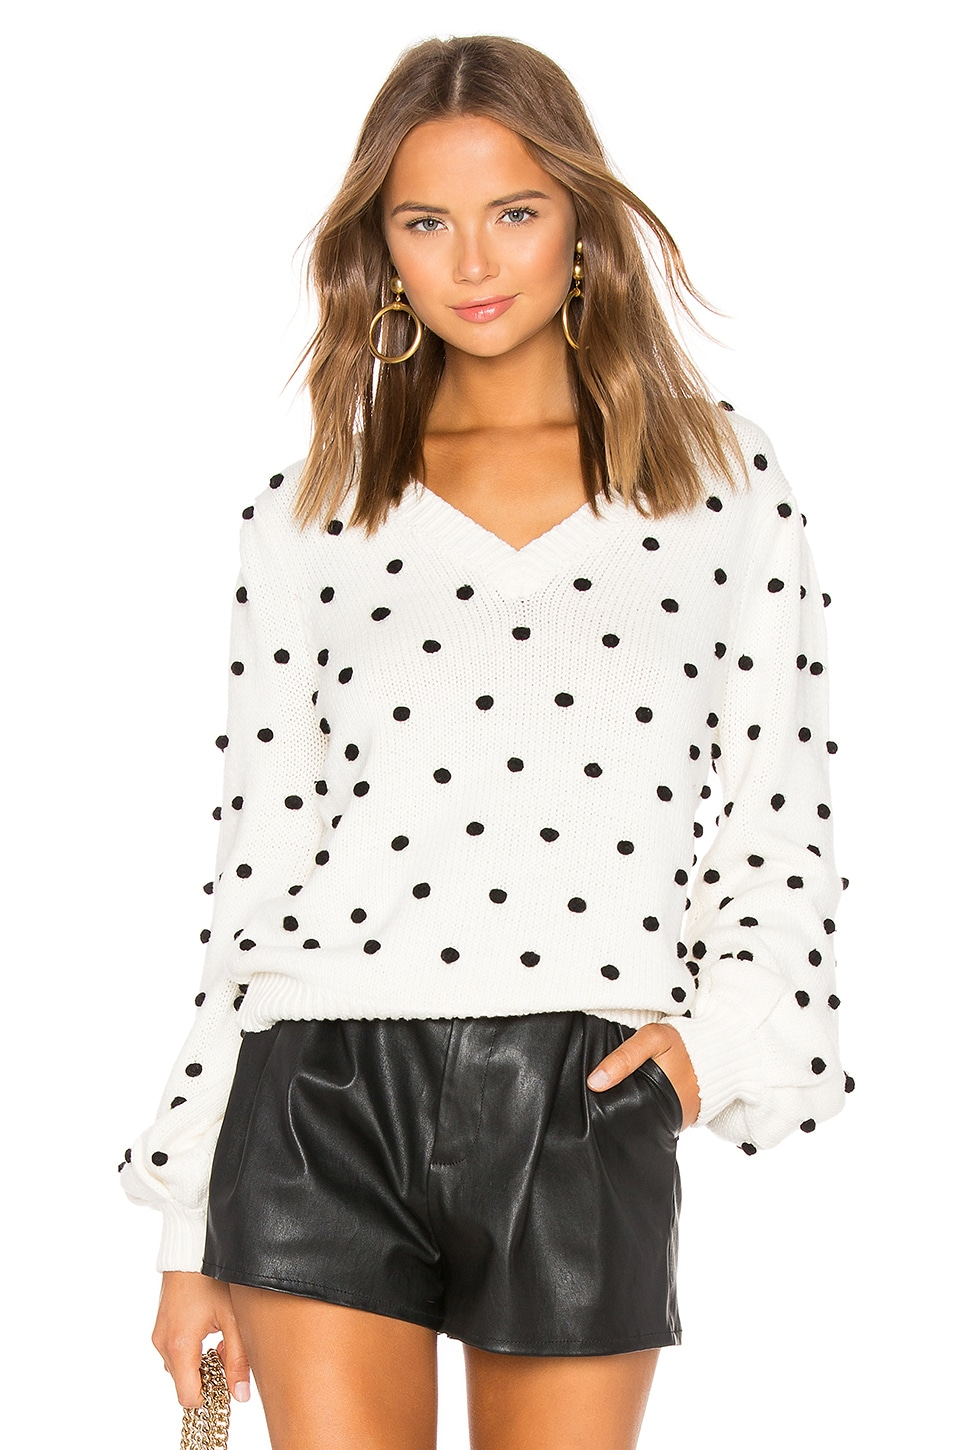 MAJORELLE Polka Dot Sweater in Ivory & Black